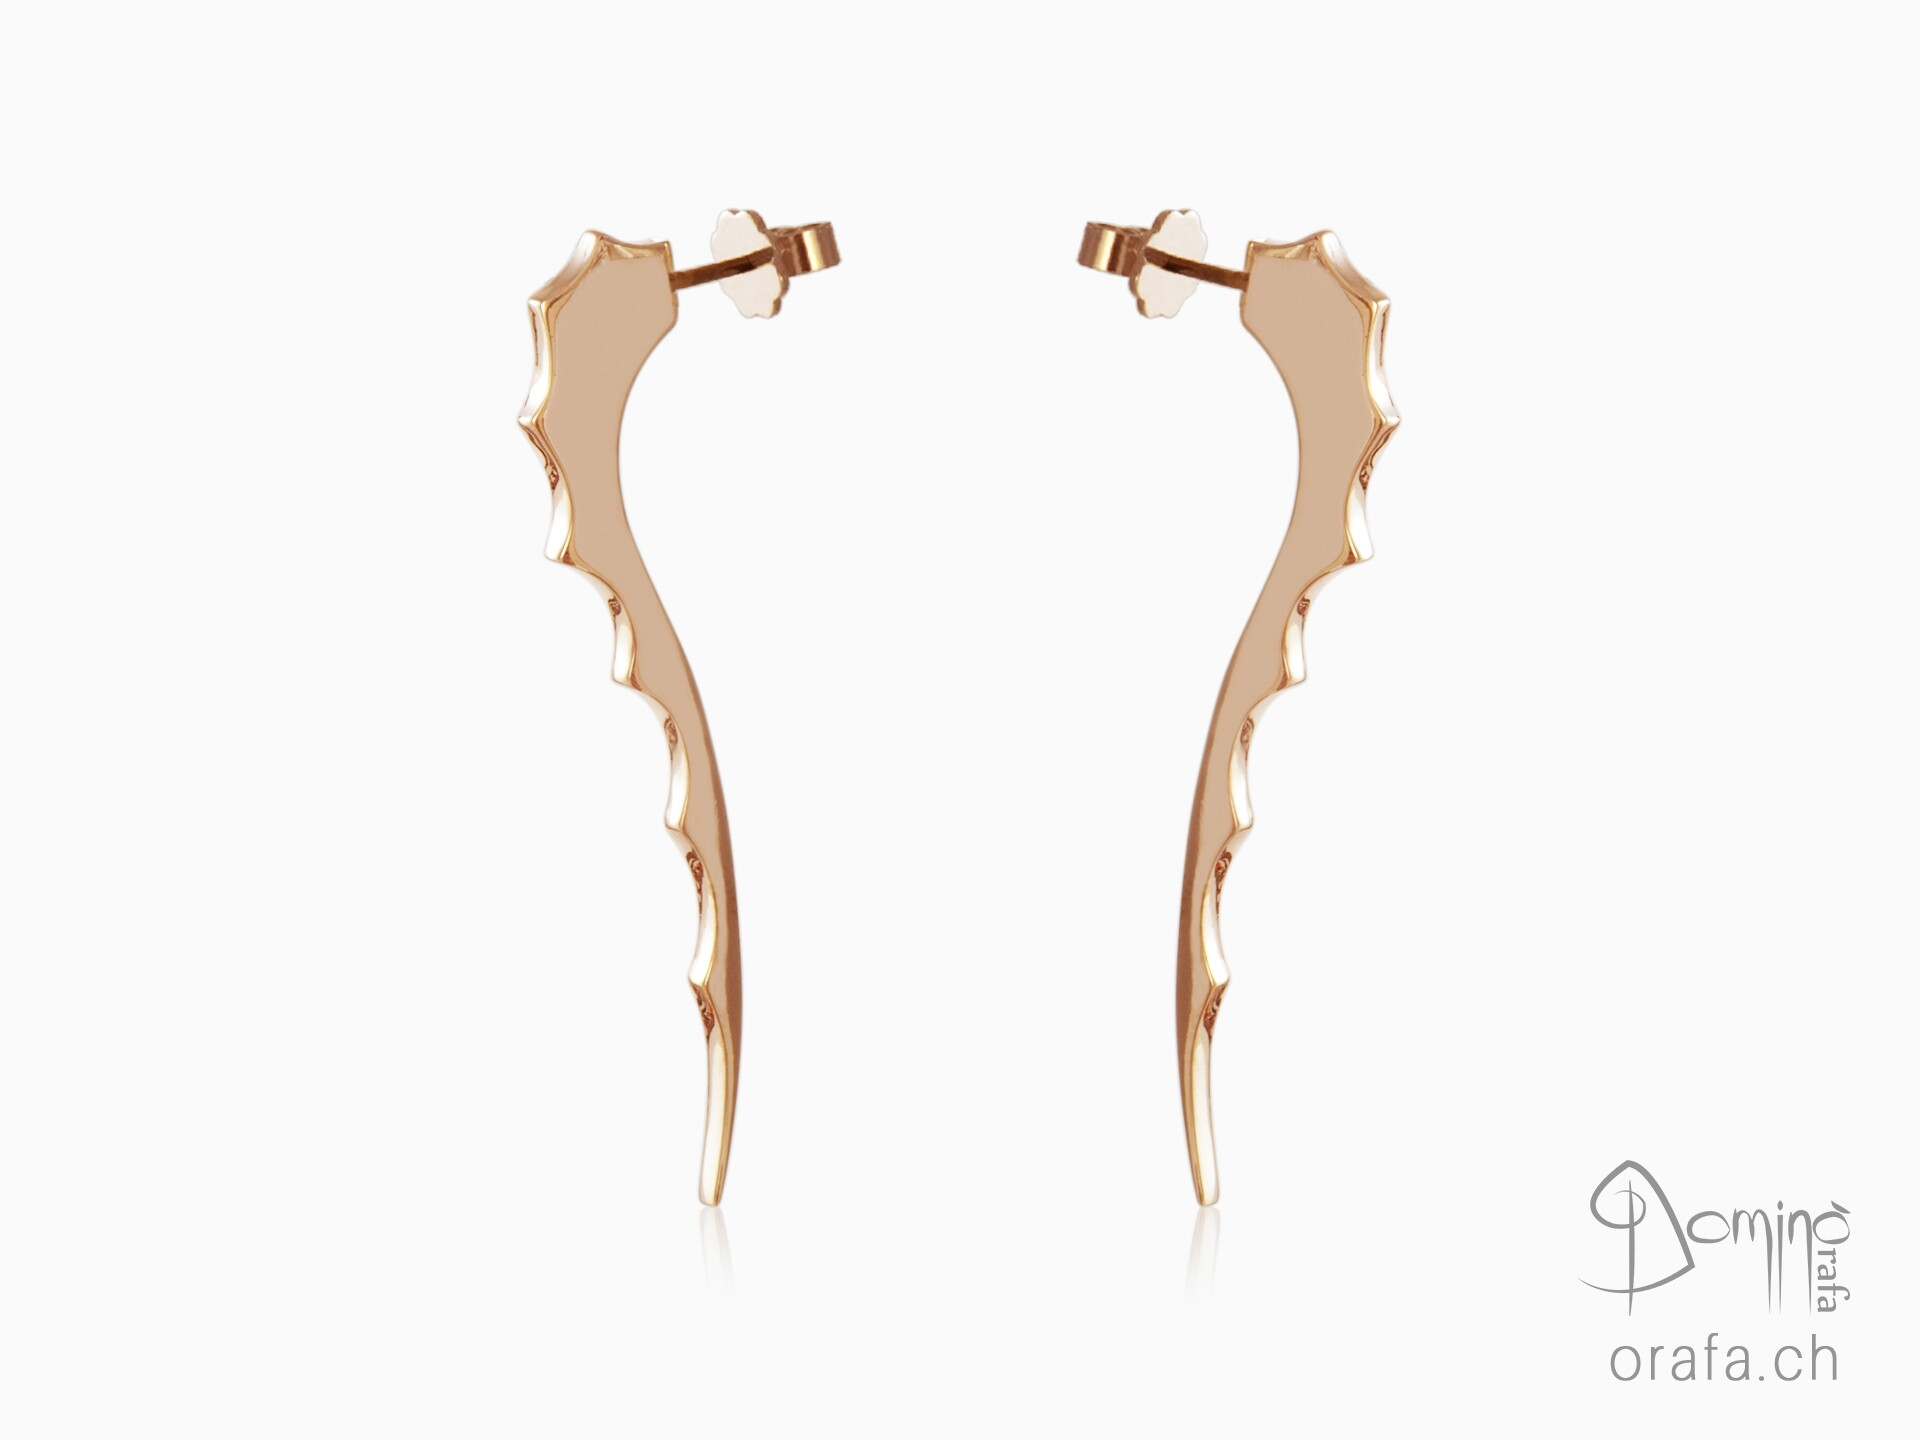 Dragon's Tail earrings